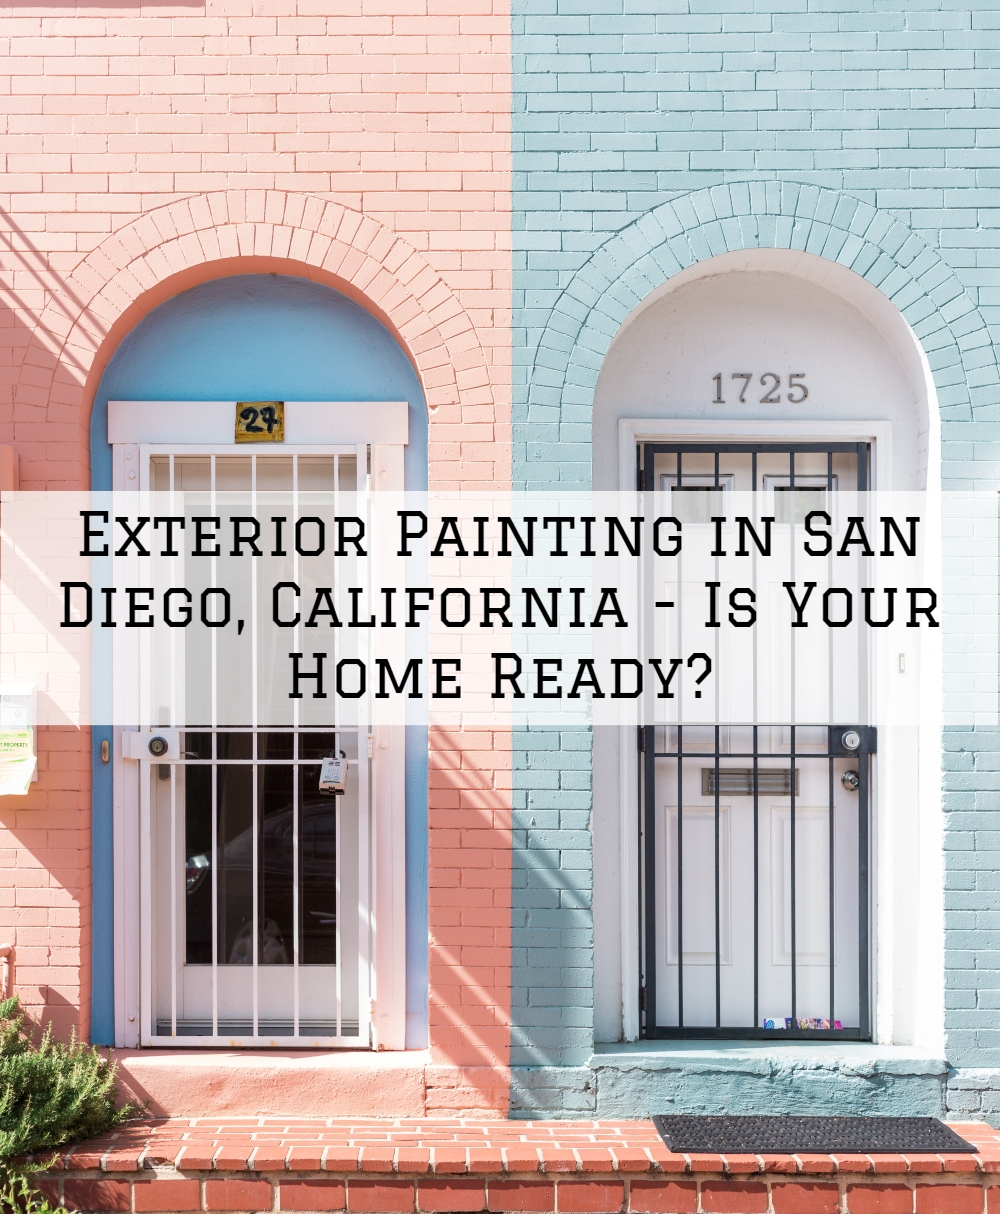 Exterior Painting in San Diego, California - Is Your Home Ready_.jpg